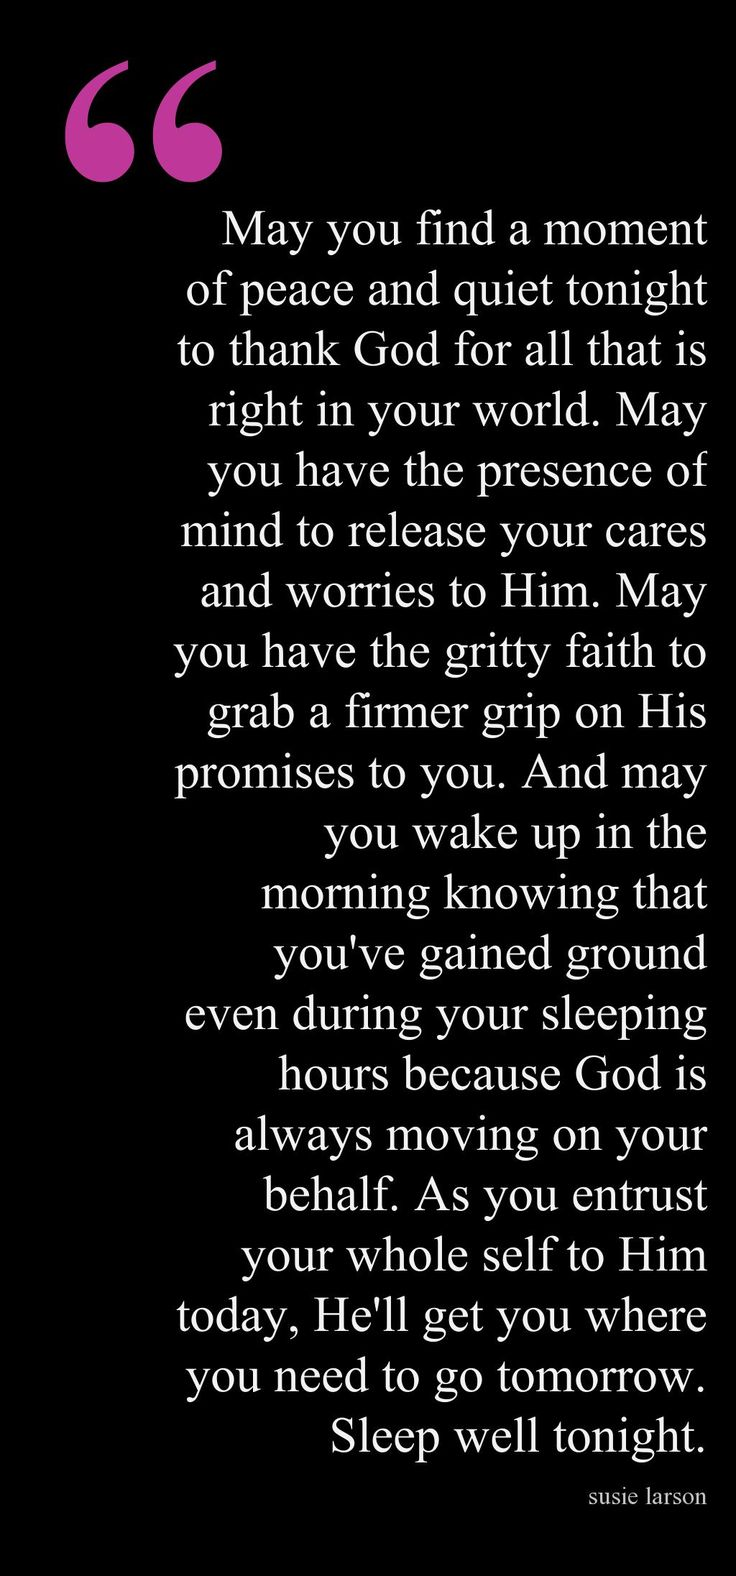 I think I'll try to read this every night